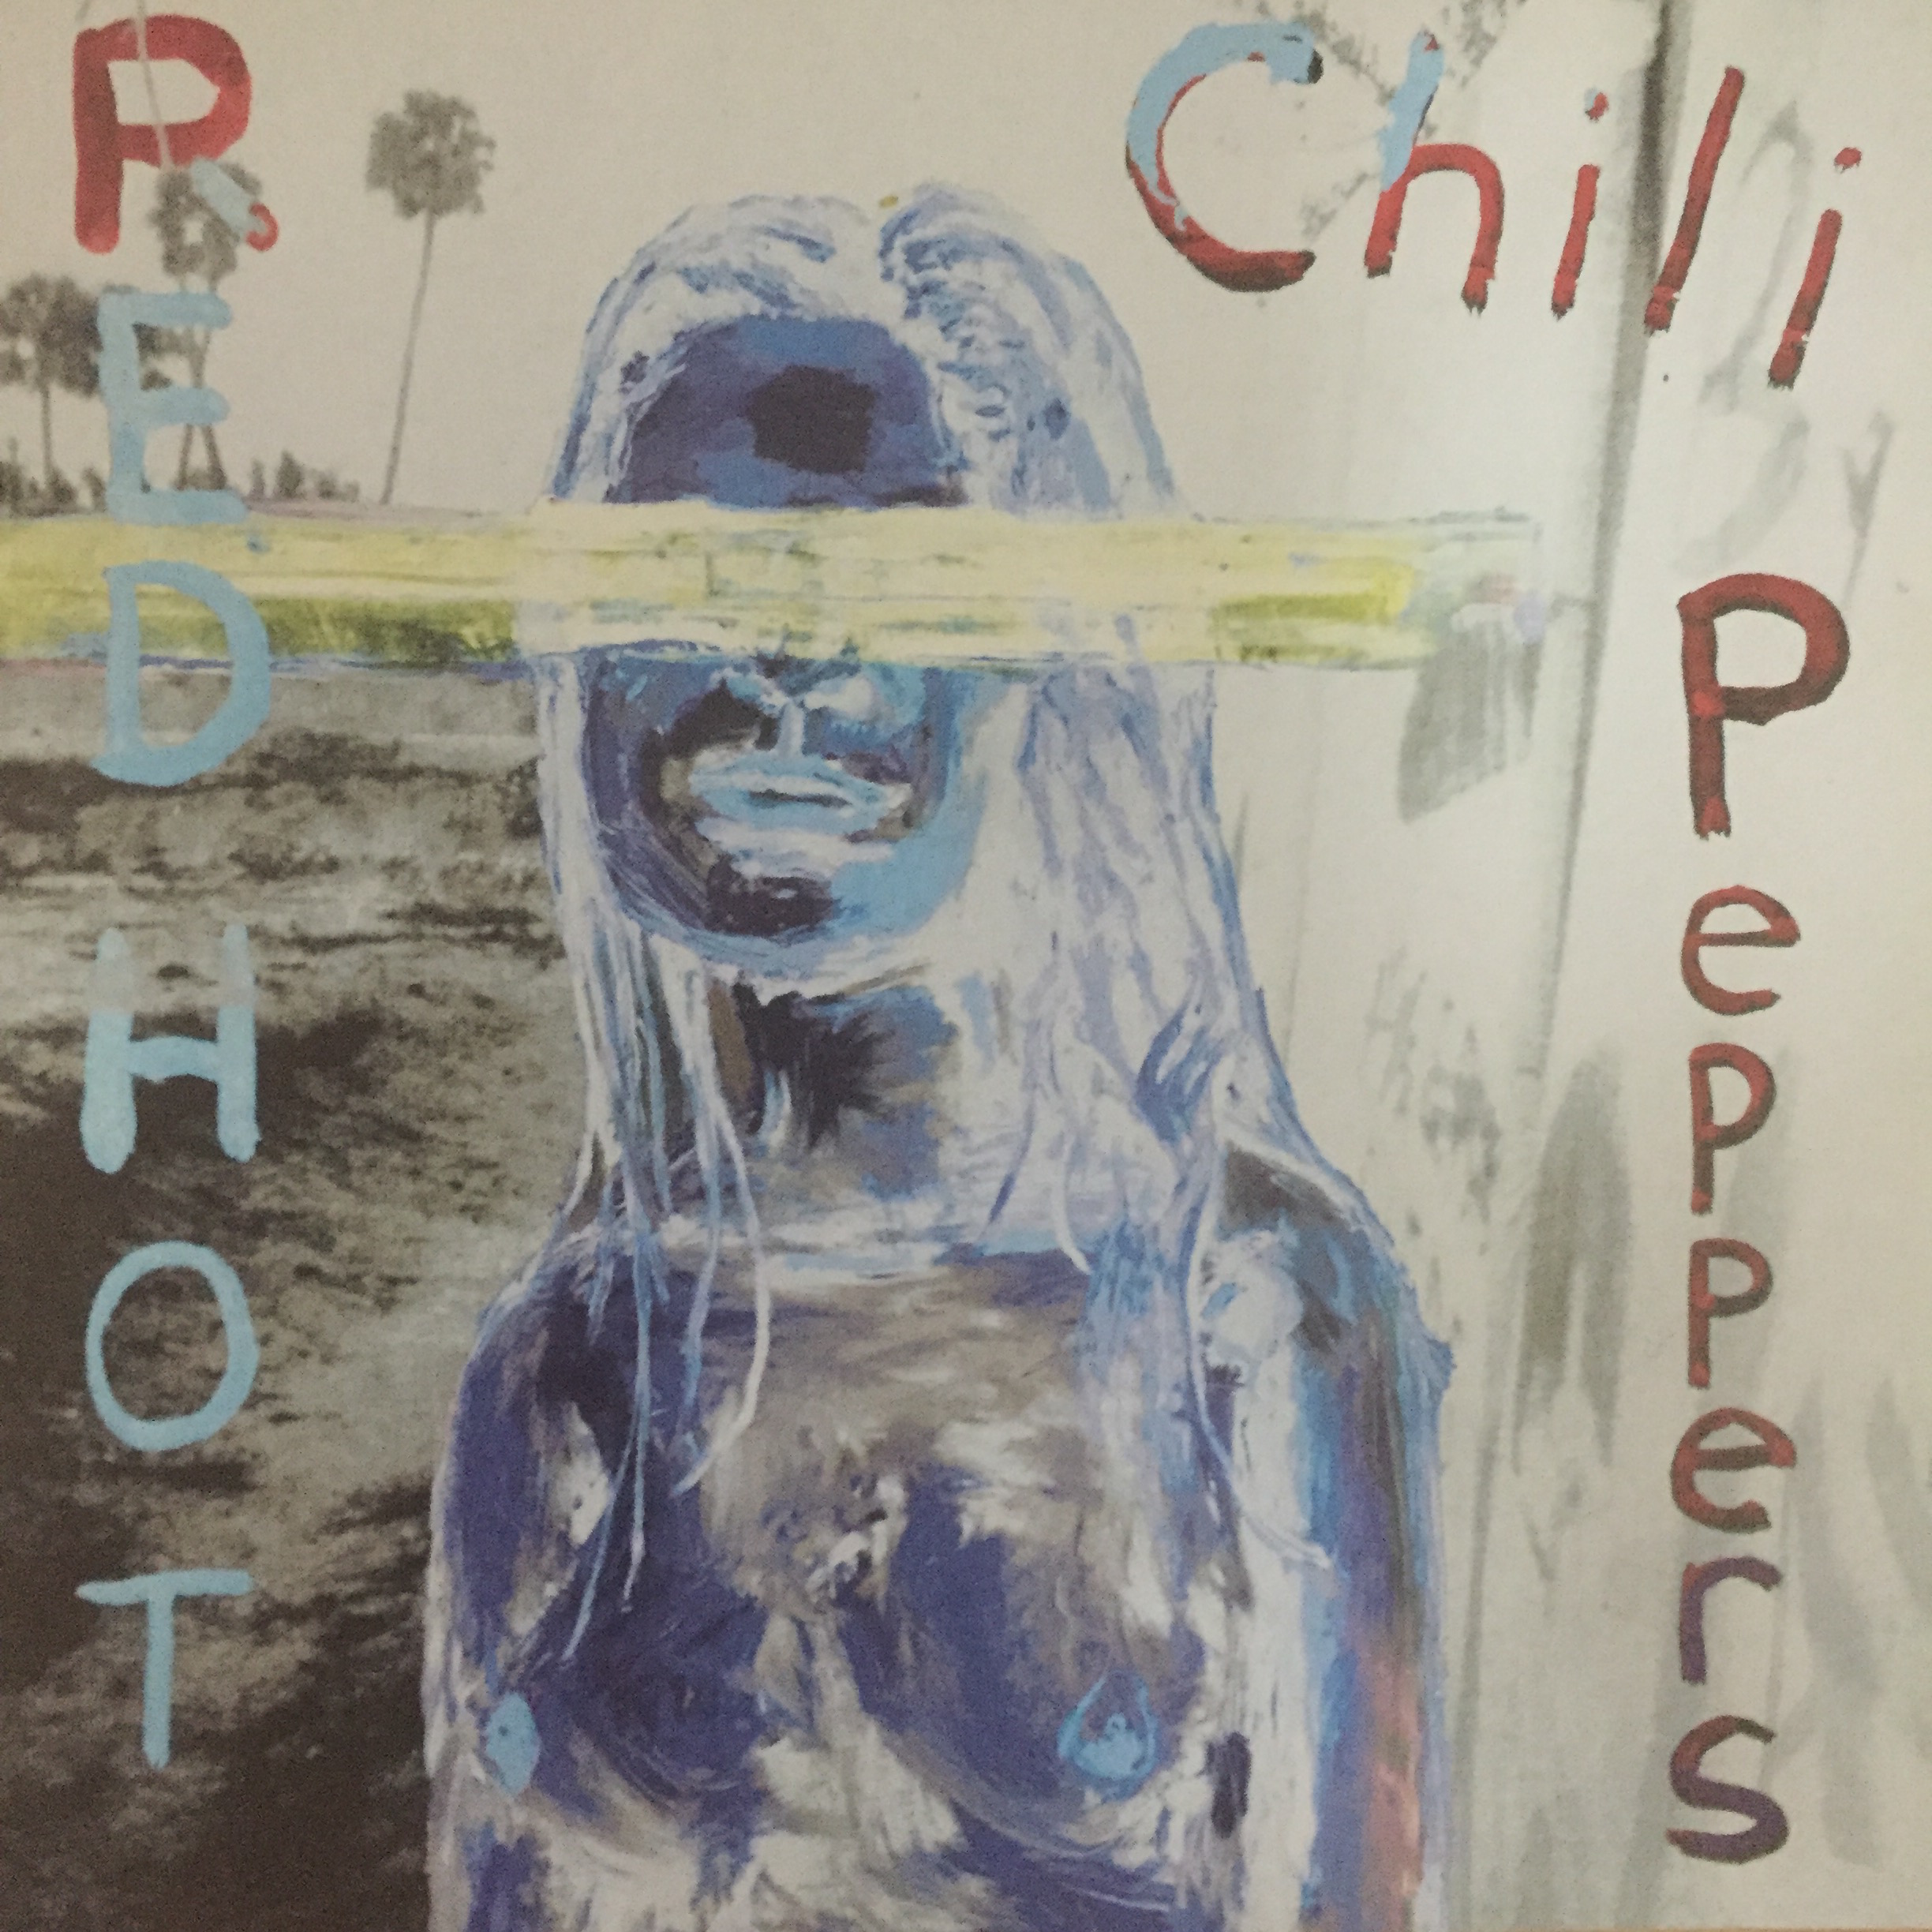 RED HOT CHILI PEPPERS 「By The Way」